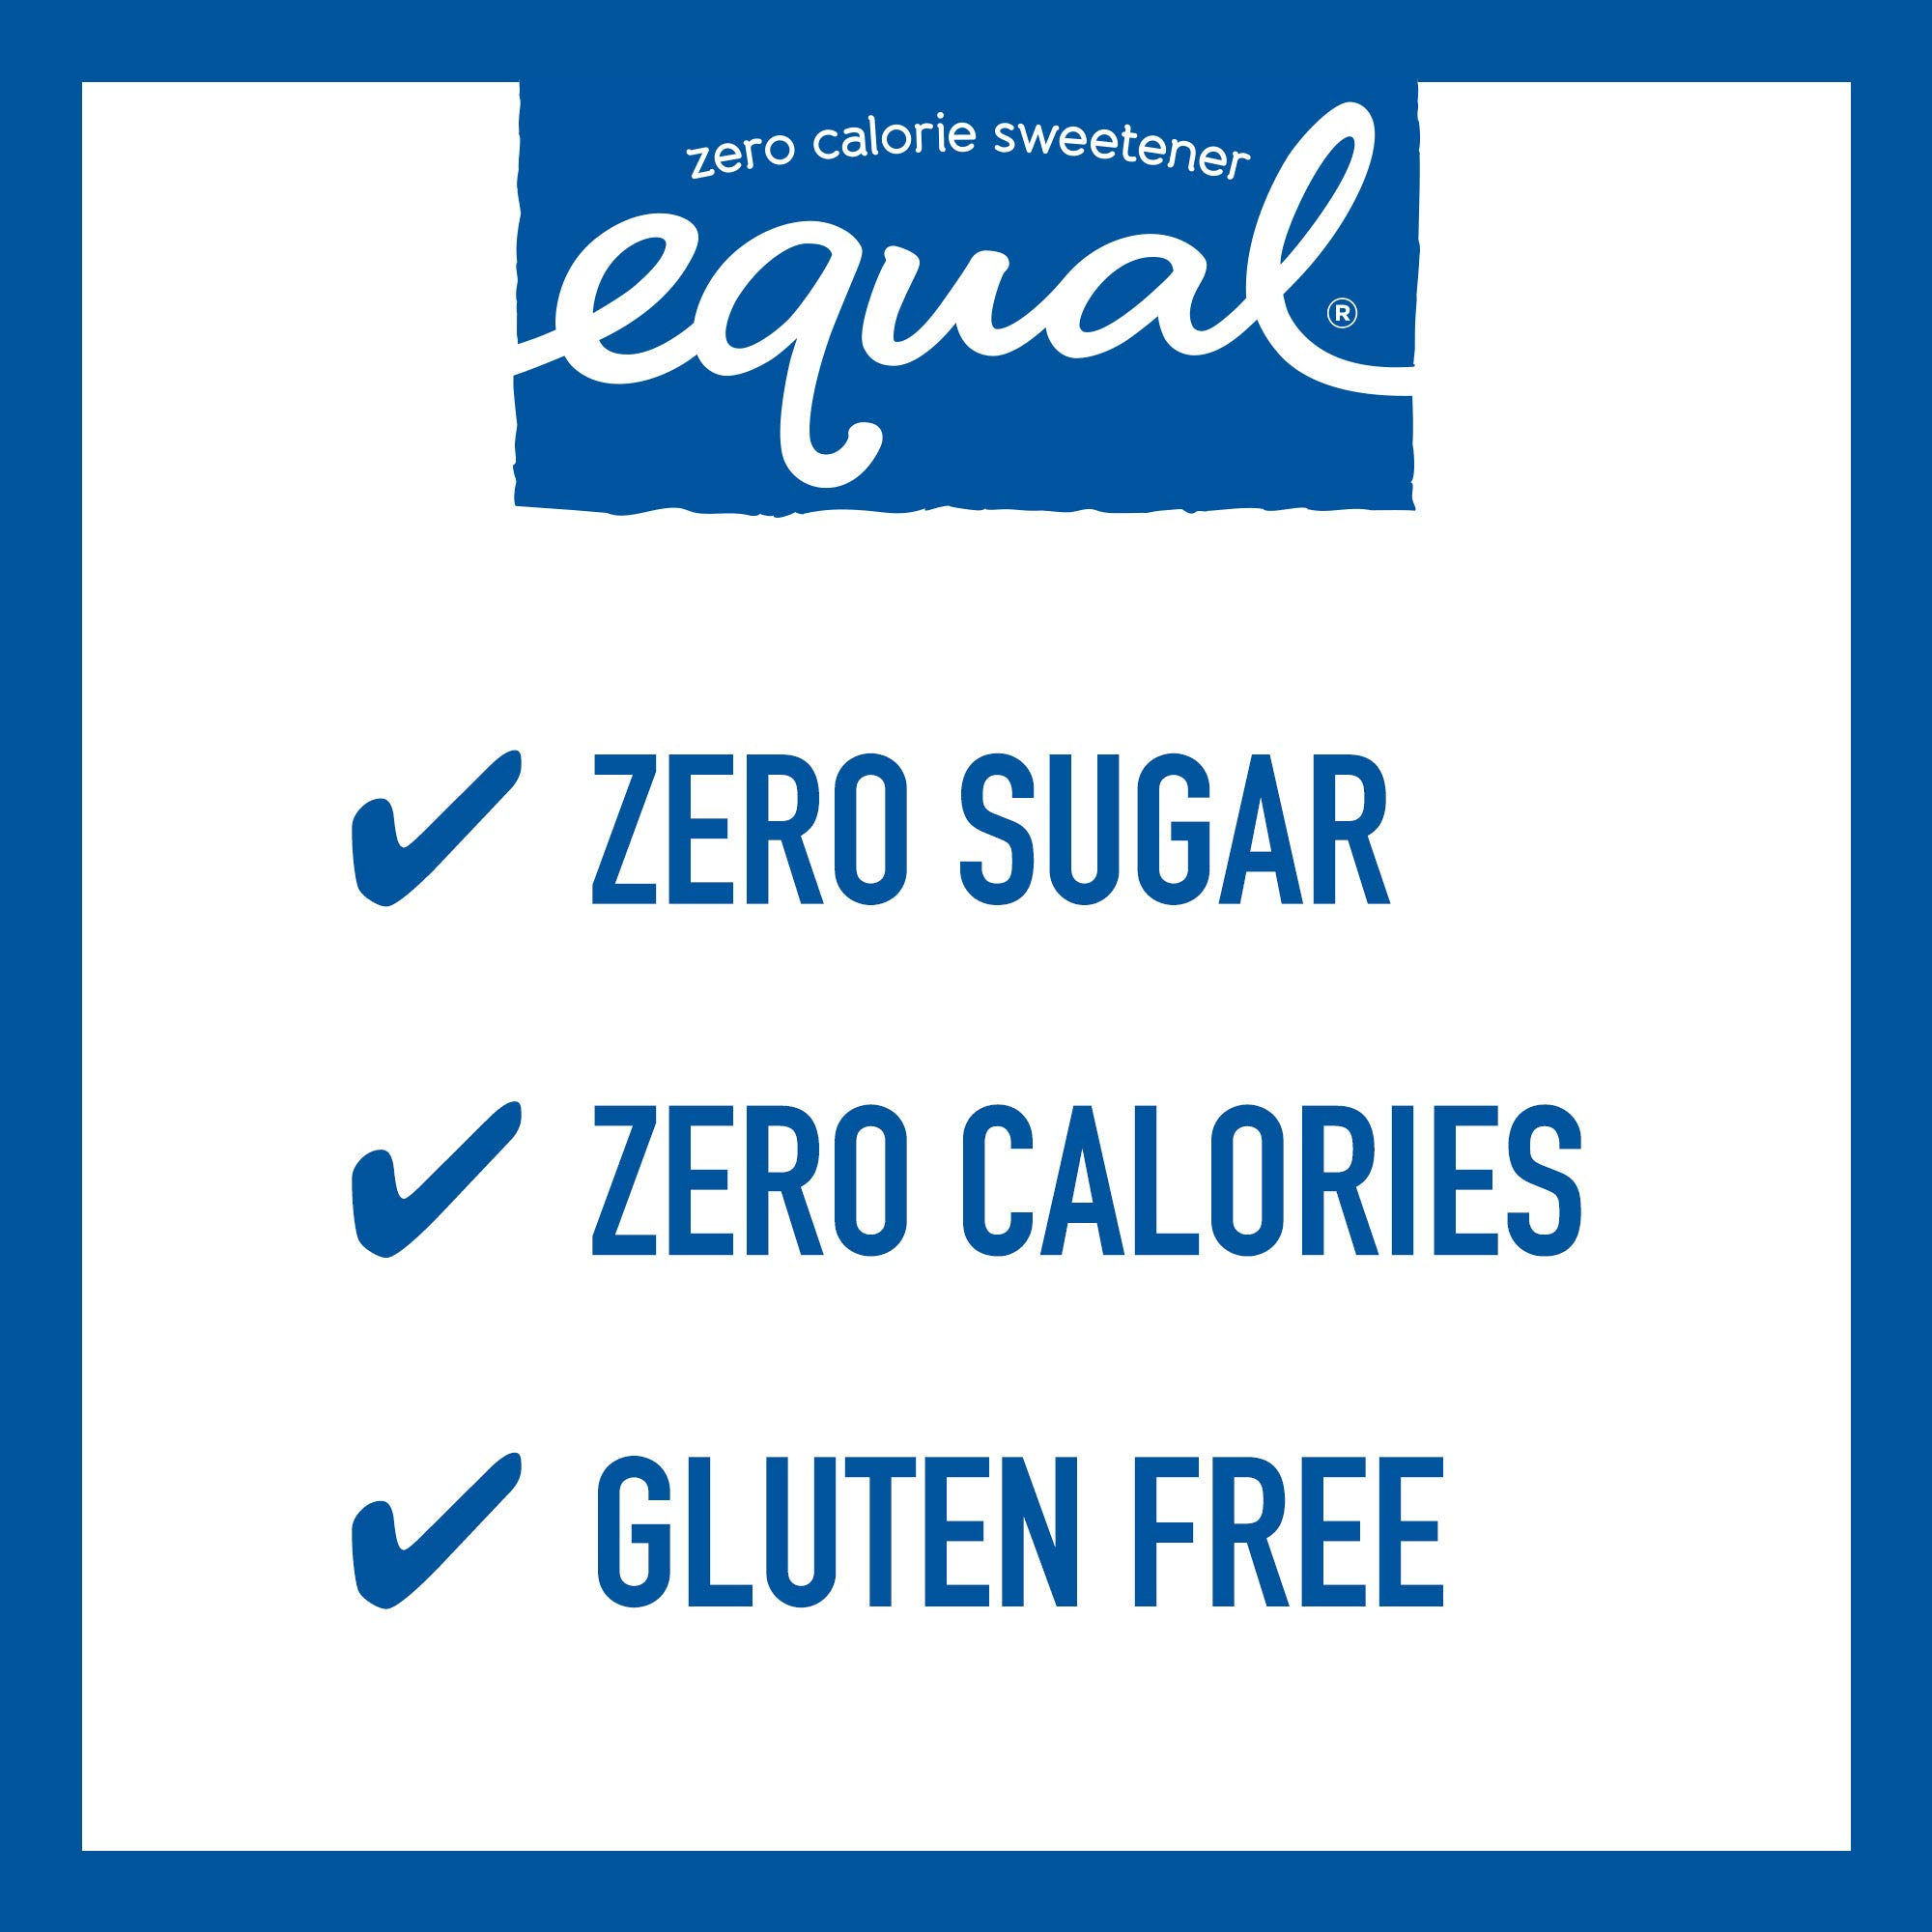 EQUAL 0 Calorie Sweetener, Sugar Substitute, Zero Calorie Sugar Alternative Sweetener Packets, Sugar Alternative, 230 Count (Pack of 3) by Equal (Image #4)